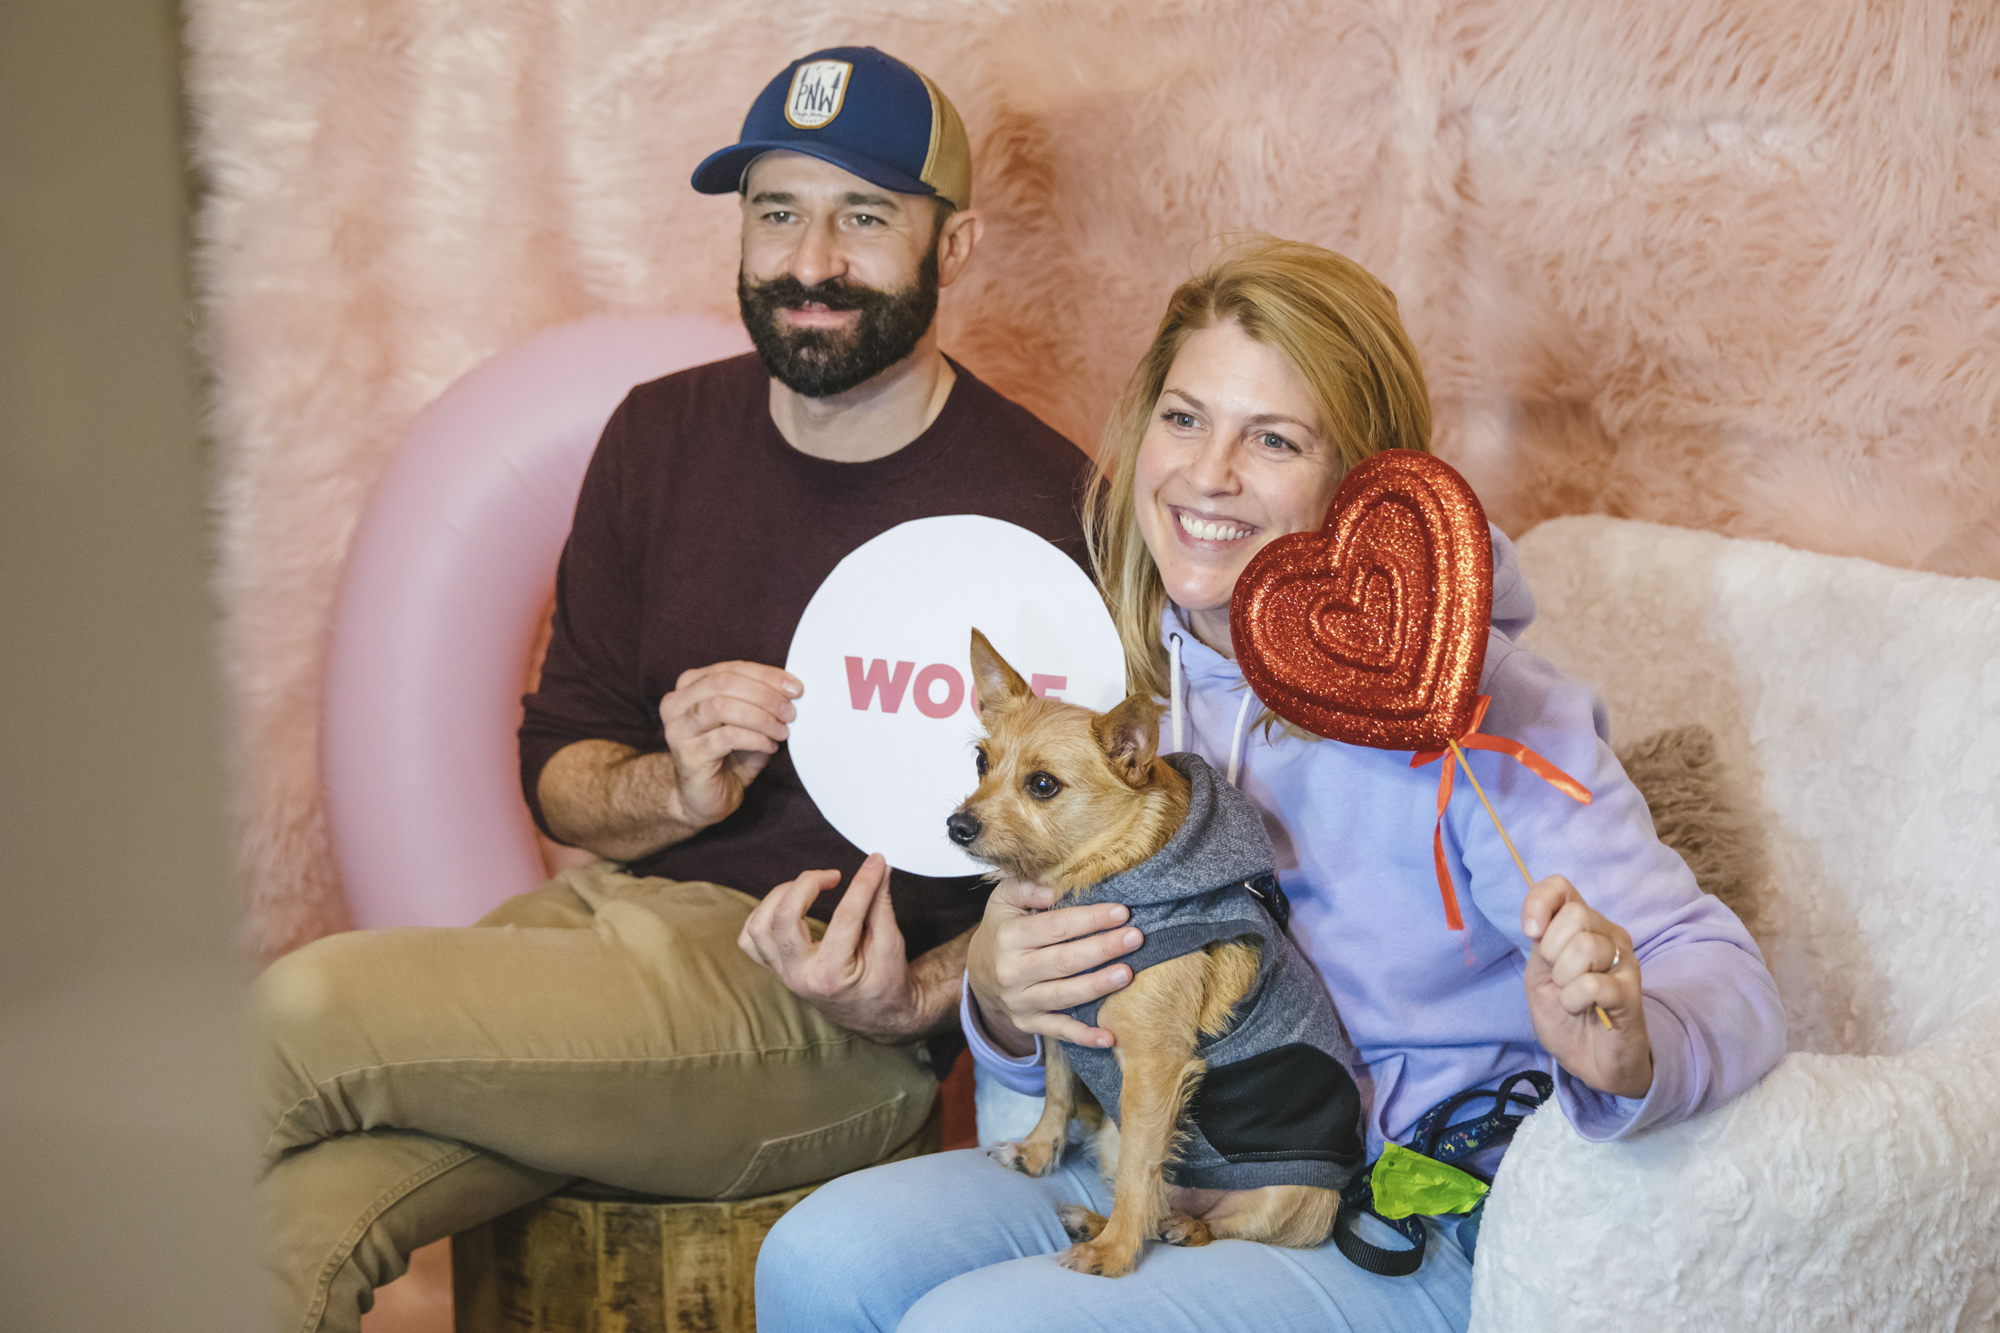 We told you about it last week - and you were AMPED: Snugglefest 2019 at the Kimpton Alexis Hotel! Pets and owners alike braved the weather to trek down to enjoy Valentine's treat, a doggy playground, a snuggle corner and tons of giveaways. Rover's Snugglefest celebrated the power of Dog Love - something we can get behind! (Image: Sunita Martini / Seattle Refined){ }